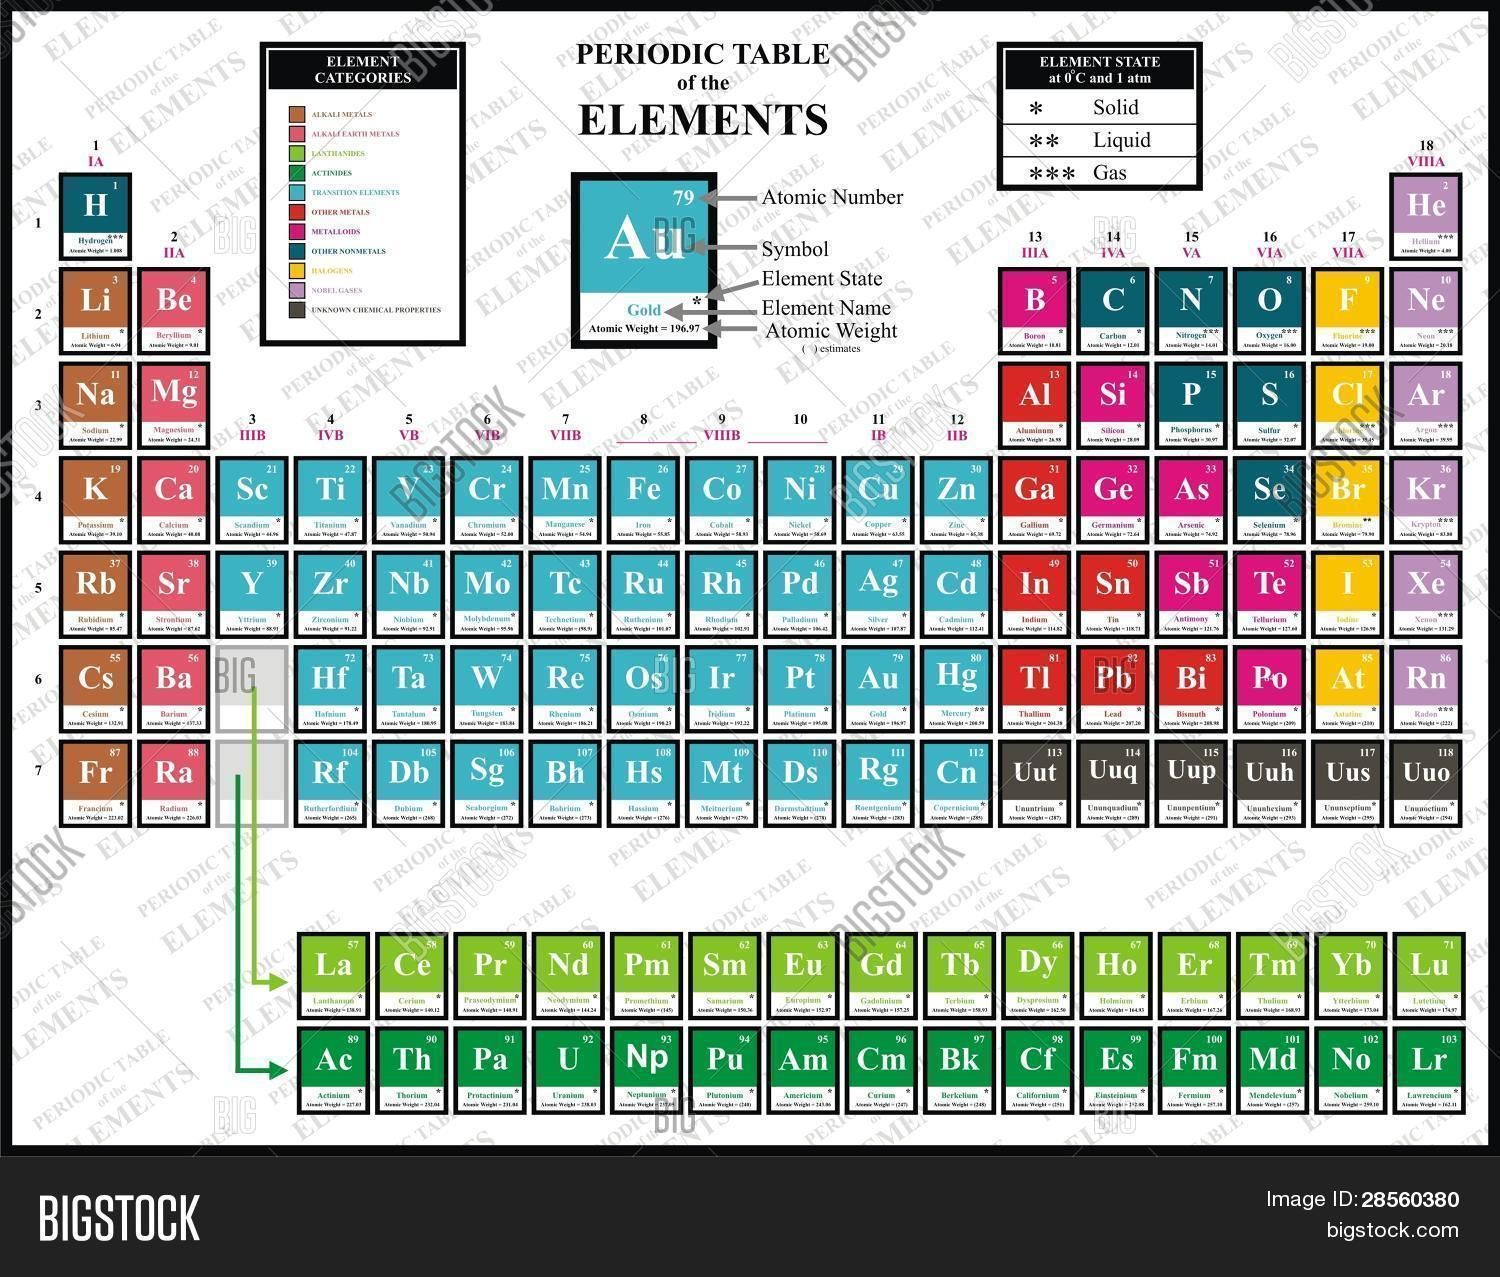 Colorful periodic table chemical image photo bigstock colorful periodic table of the chemical elements including element name atomic number atomic urtaz